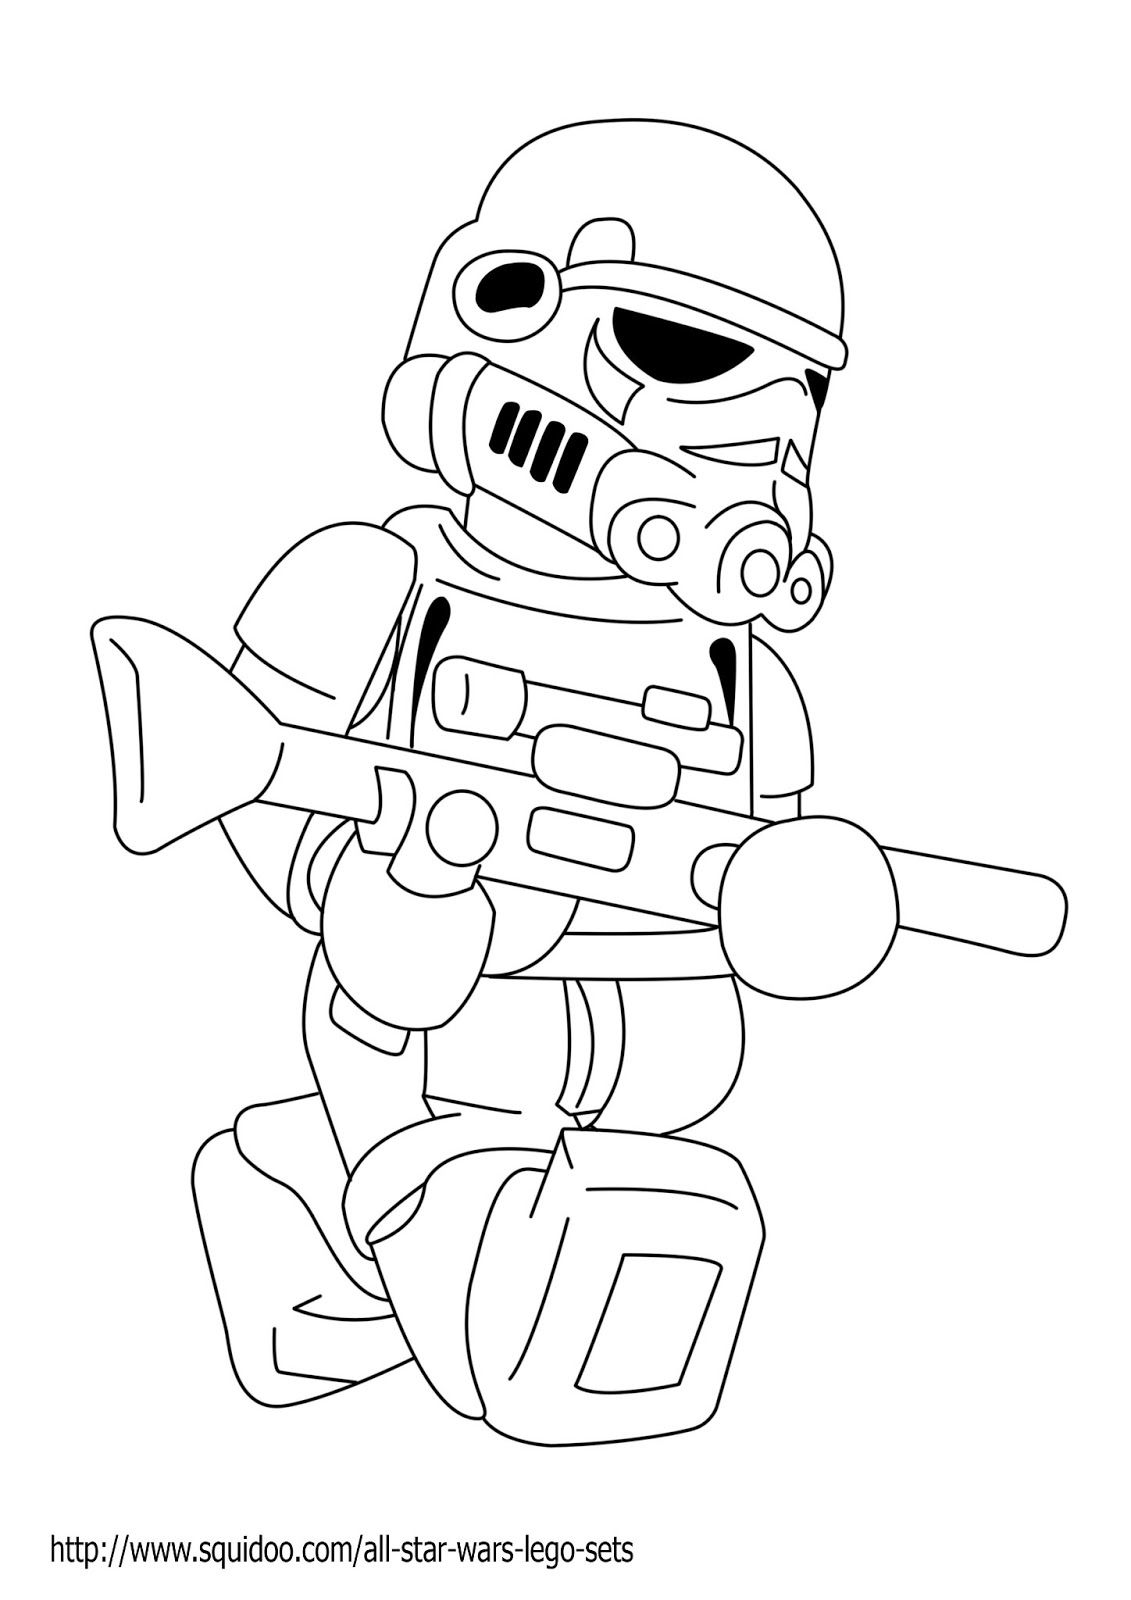 lego figure coloring  lego minifigure colouring pages